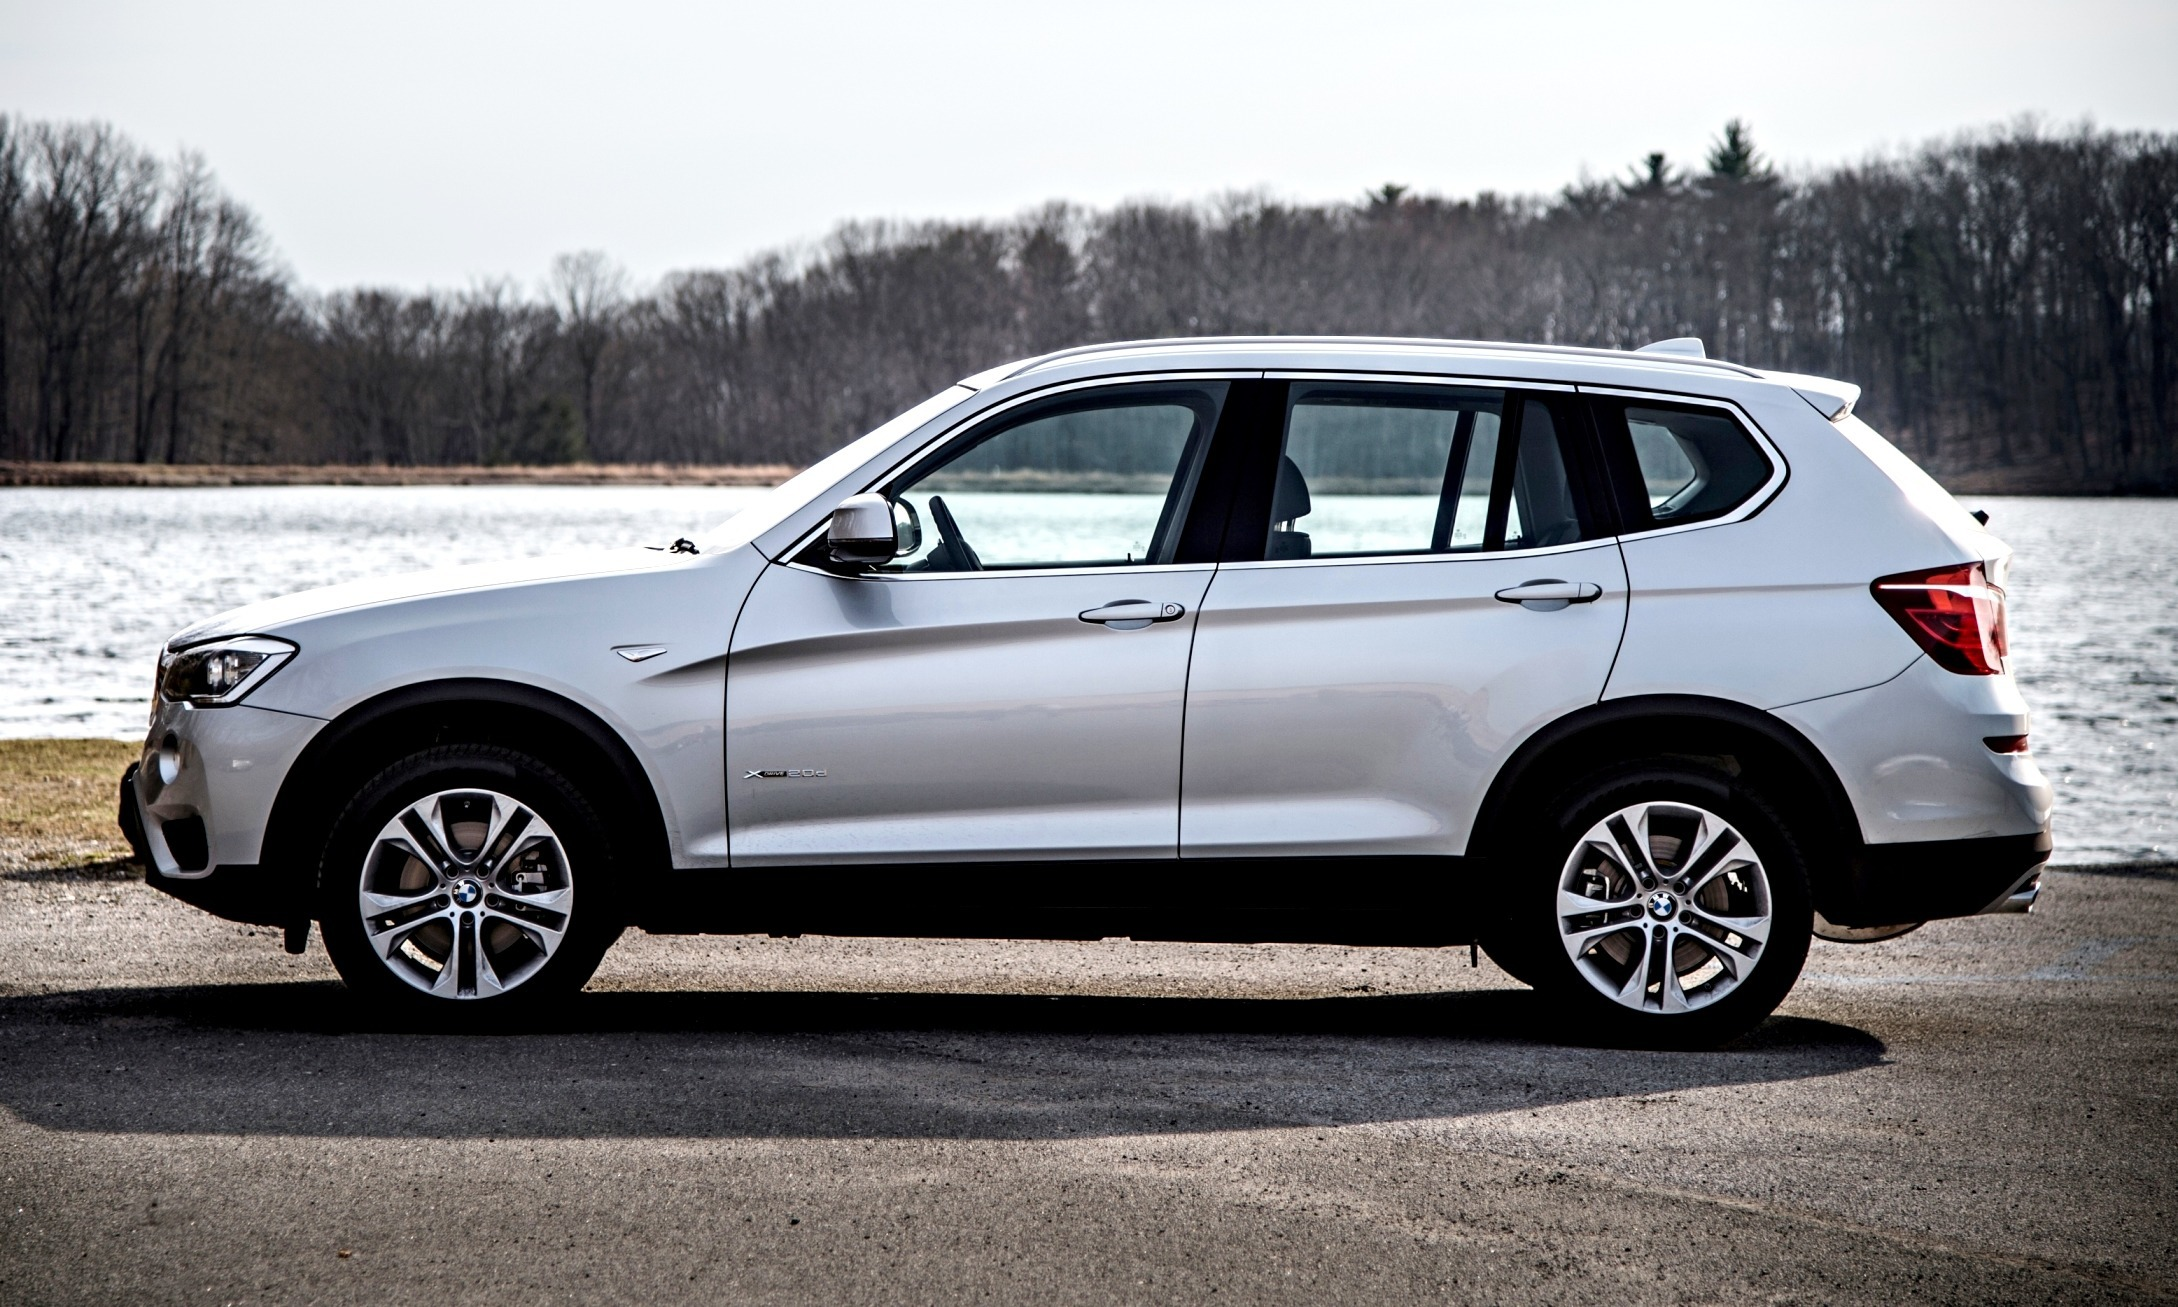 2015 Bmw X3 Xline Vs M Sport Pricing Specs With 100 New